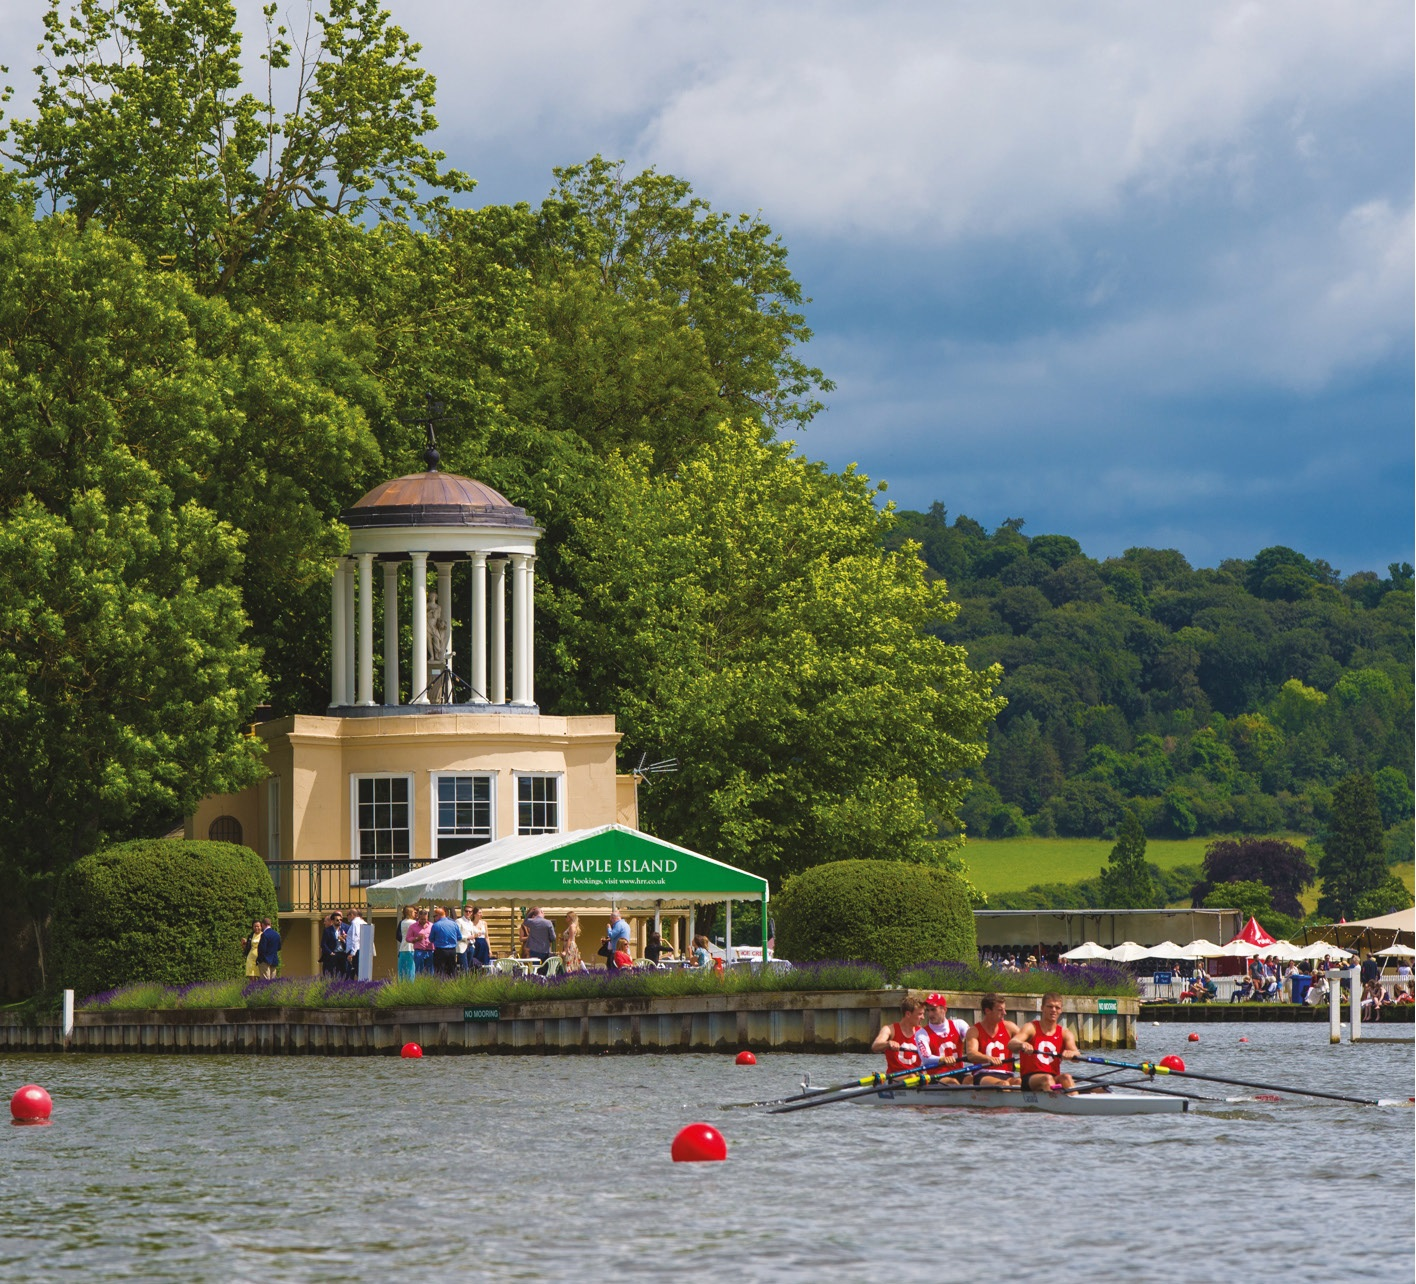 Henley royal regatta temple island private hospitality vip package book